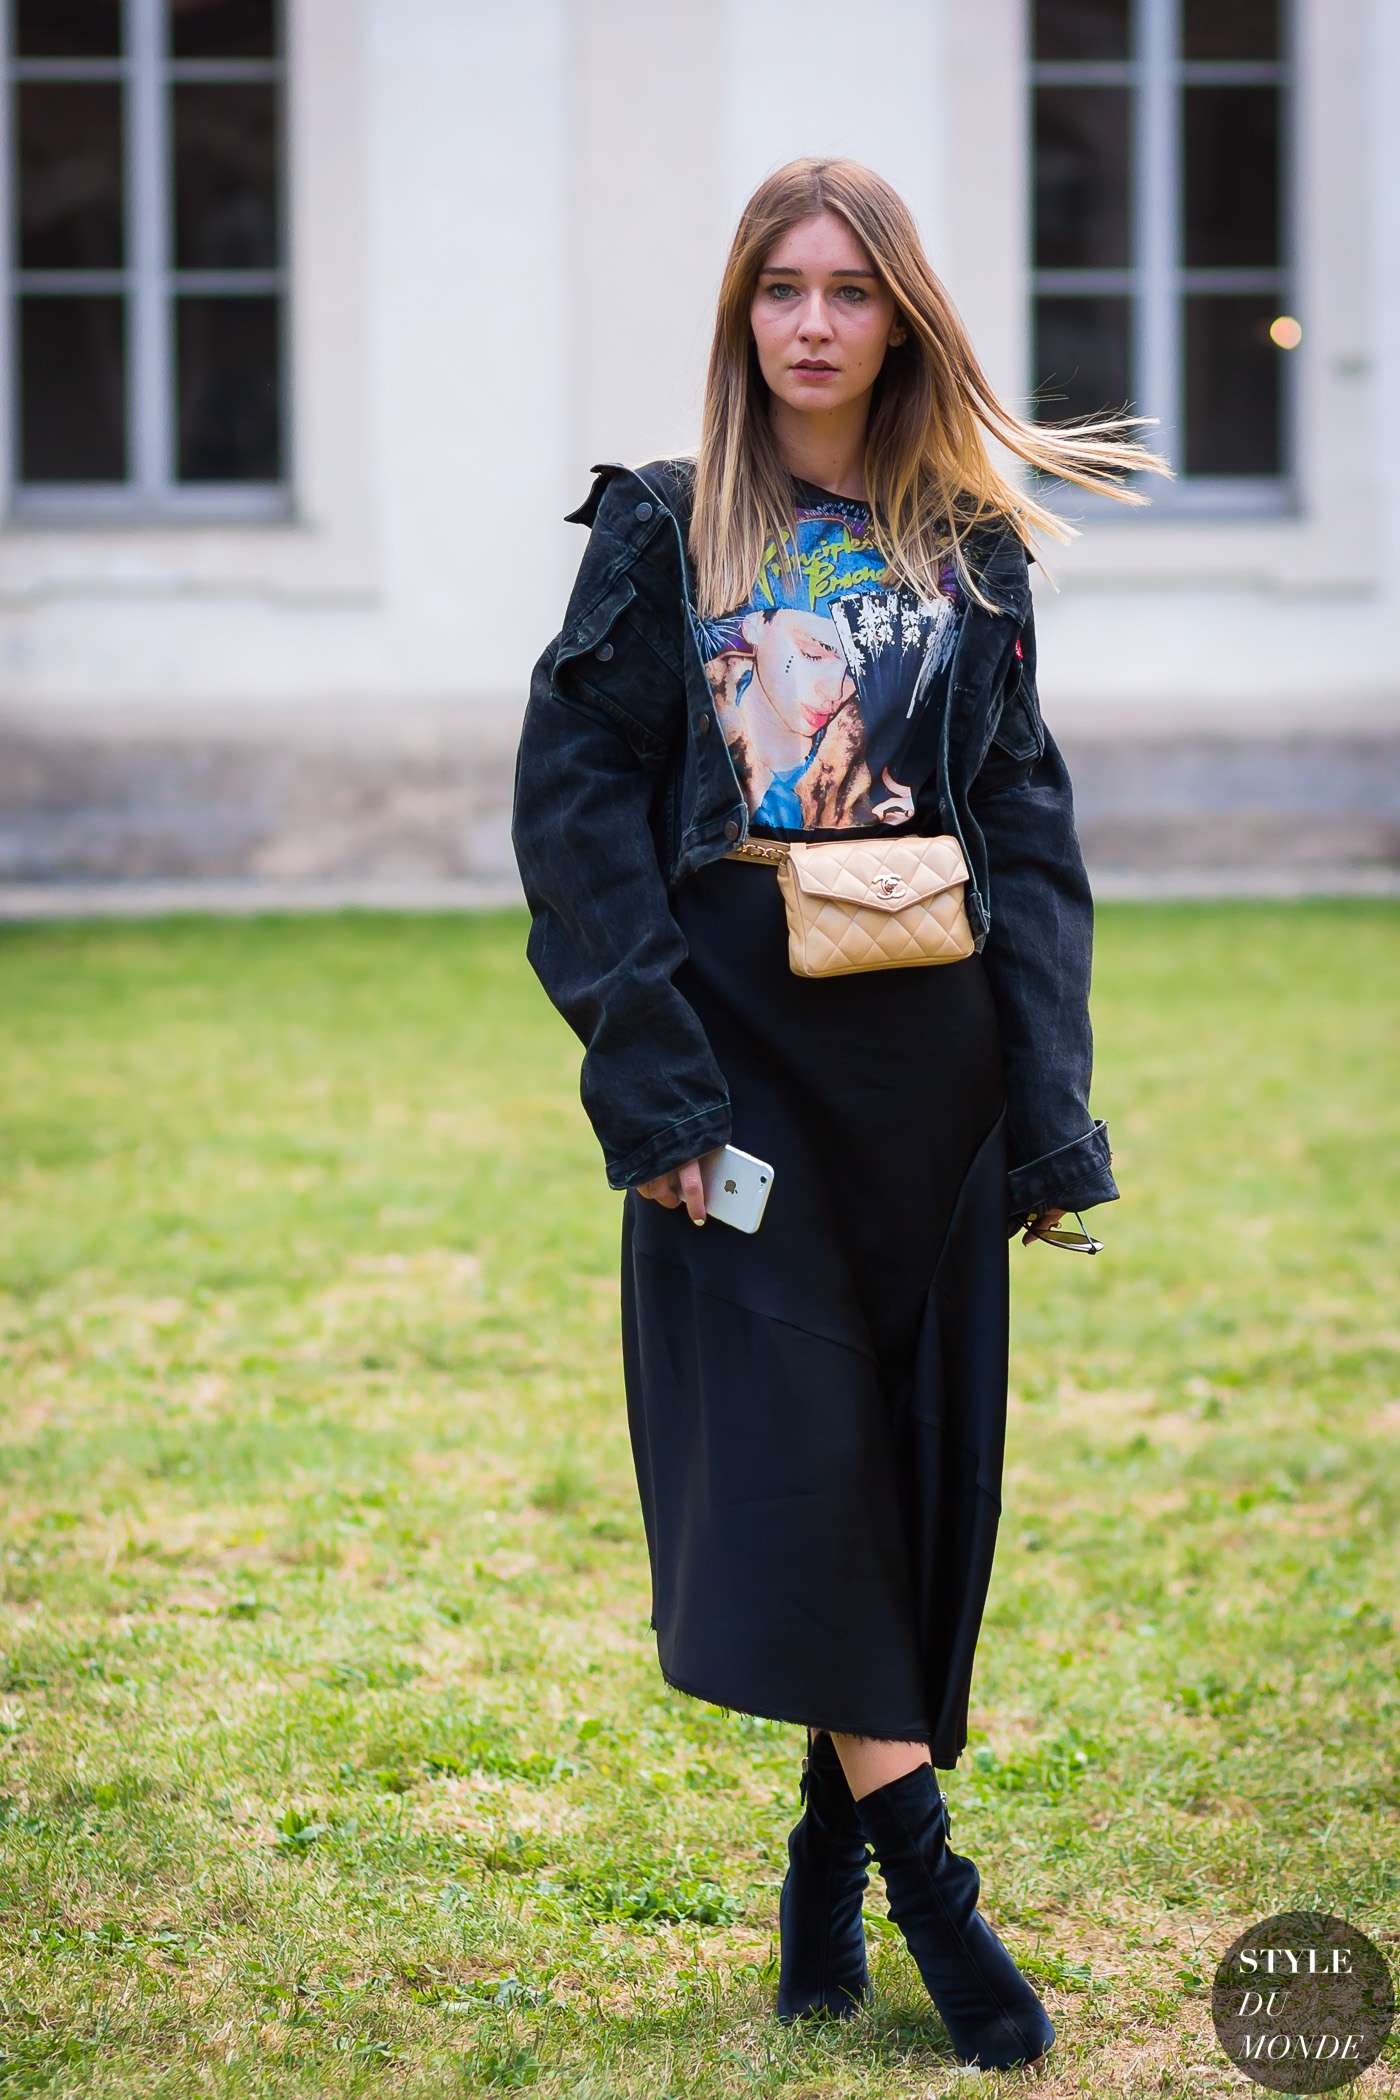 chiara-capitani-by-styledumonde-street-style-fashion-photography